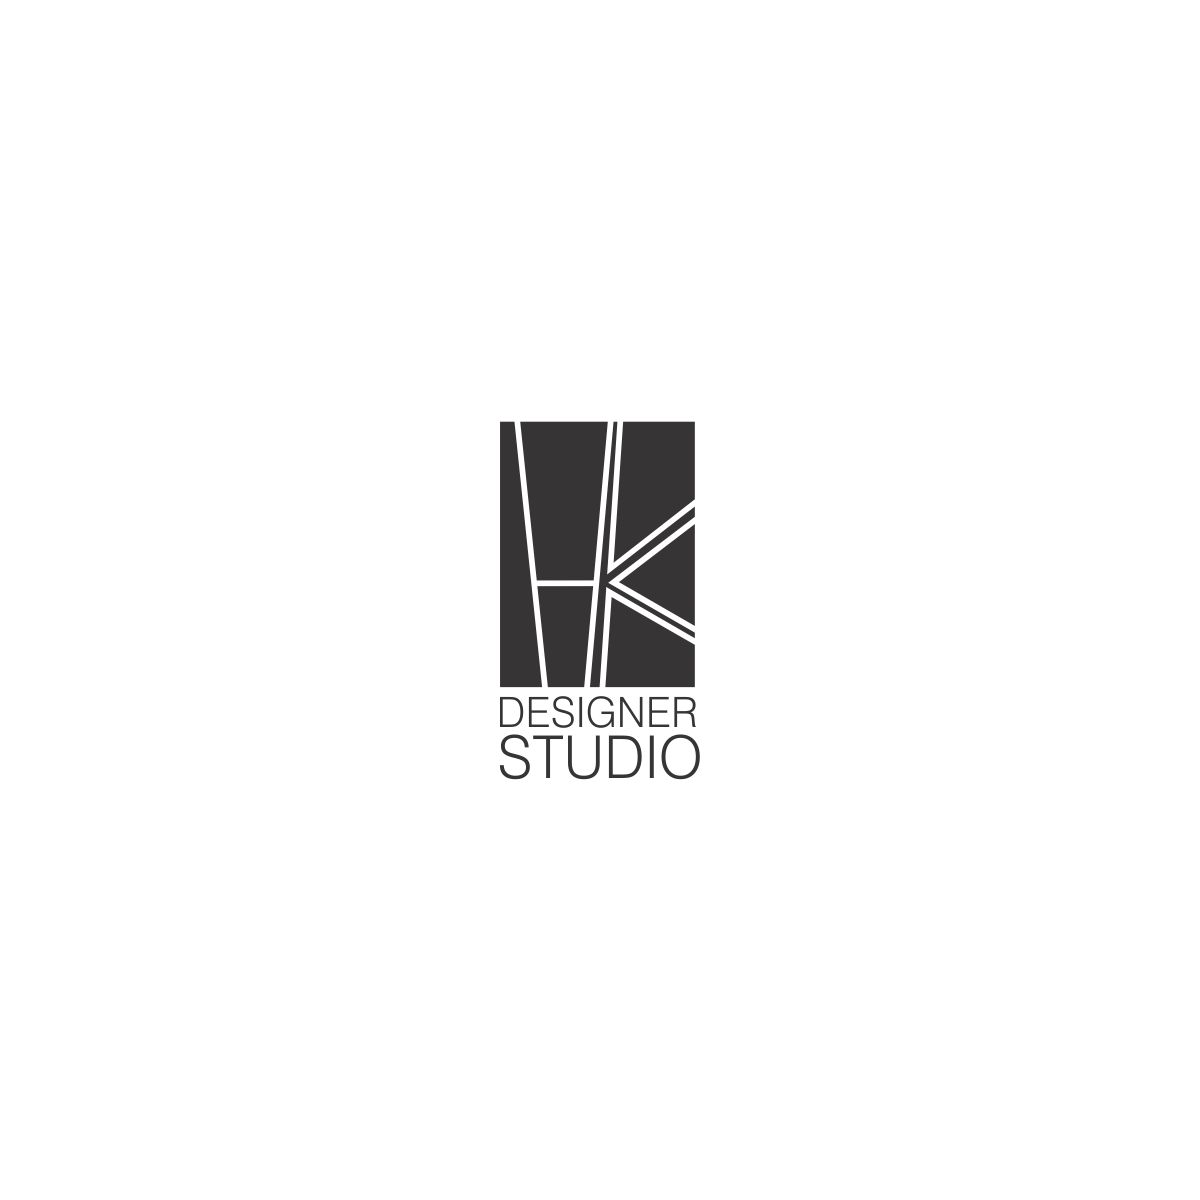 Hk Design Studio Interior Design And Furniture 123 Logo Designs For Hk Design Studio